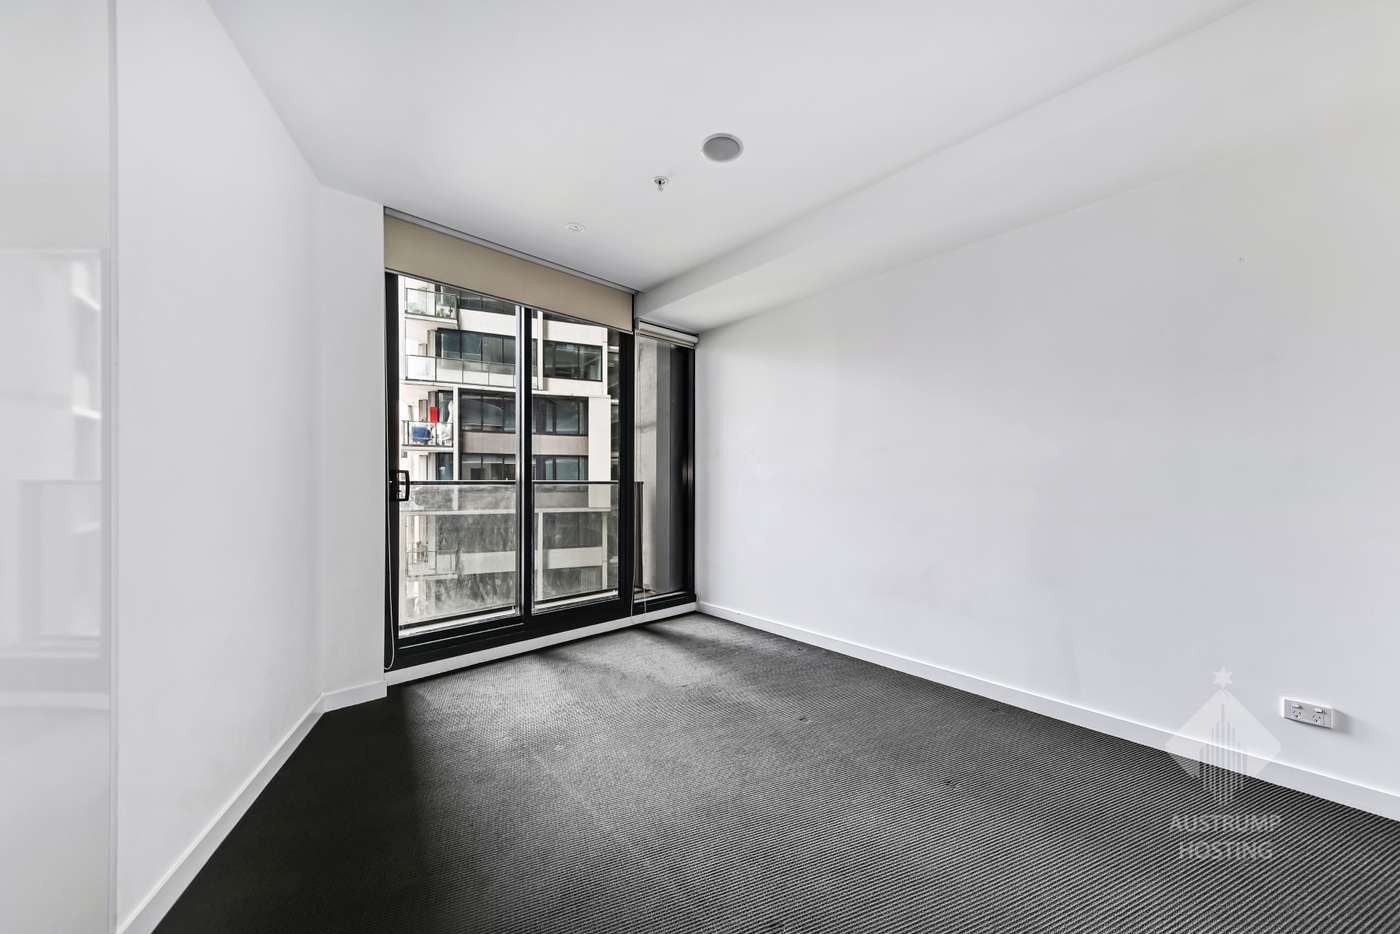 Sixth view of Homely apartment listing, 1412/33 Rose Lane, Melbourne VIC 3000